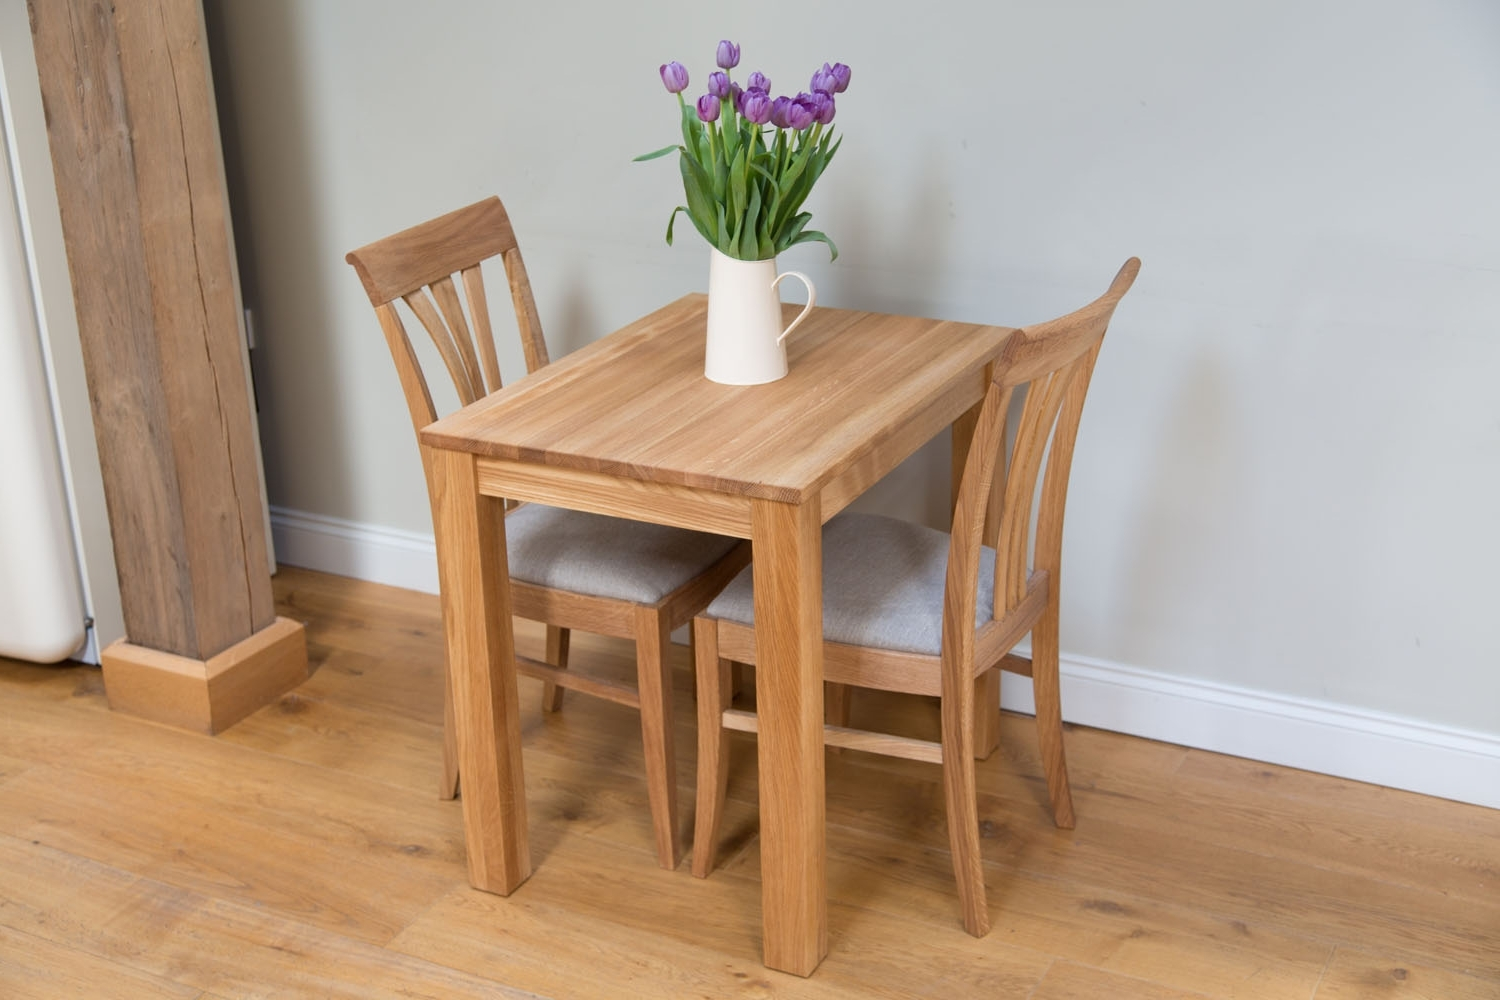 Cheap 2 Seater Kitchen Table (View 2 of 25)